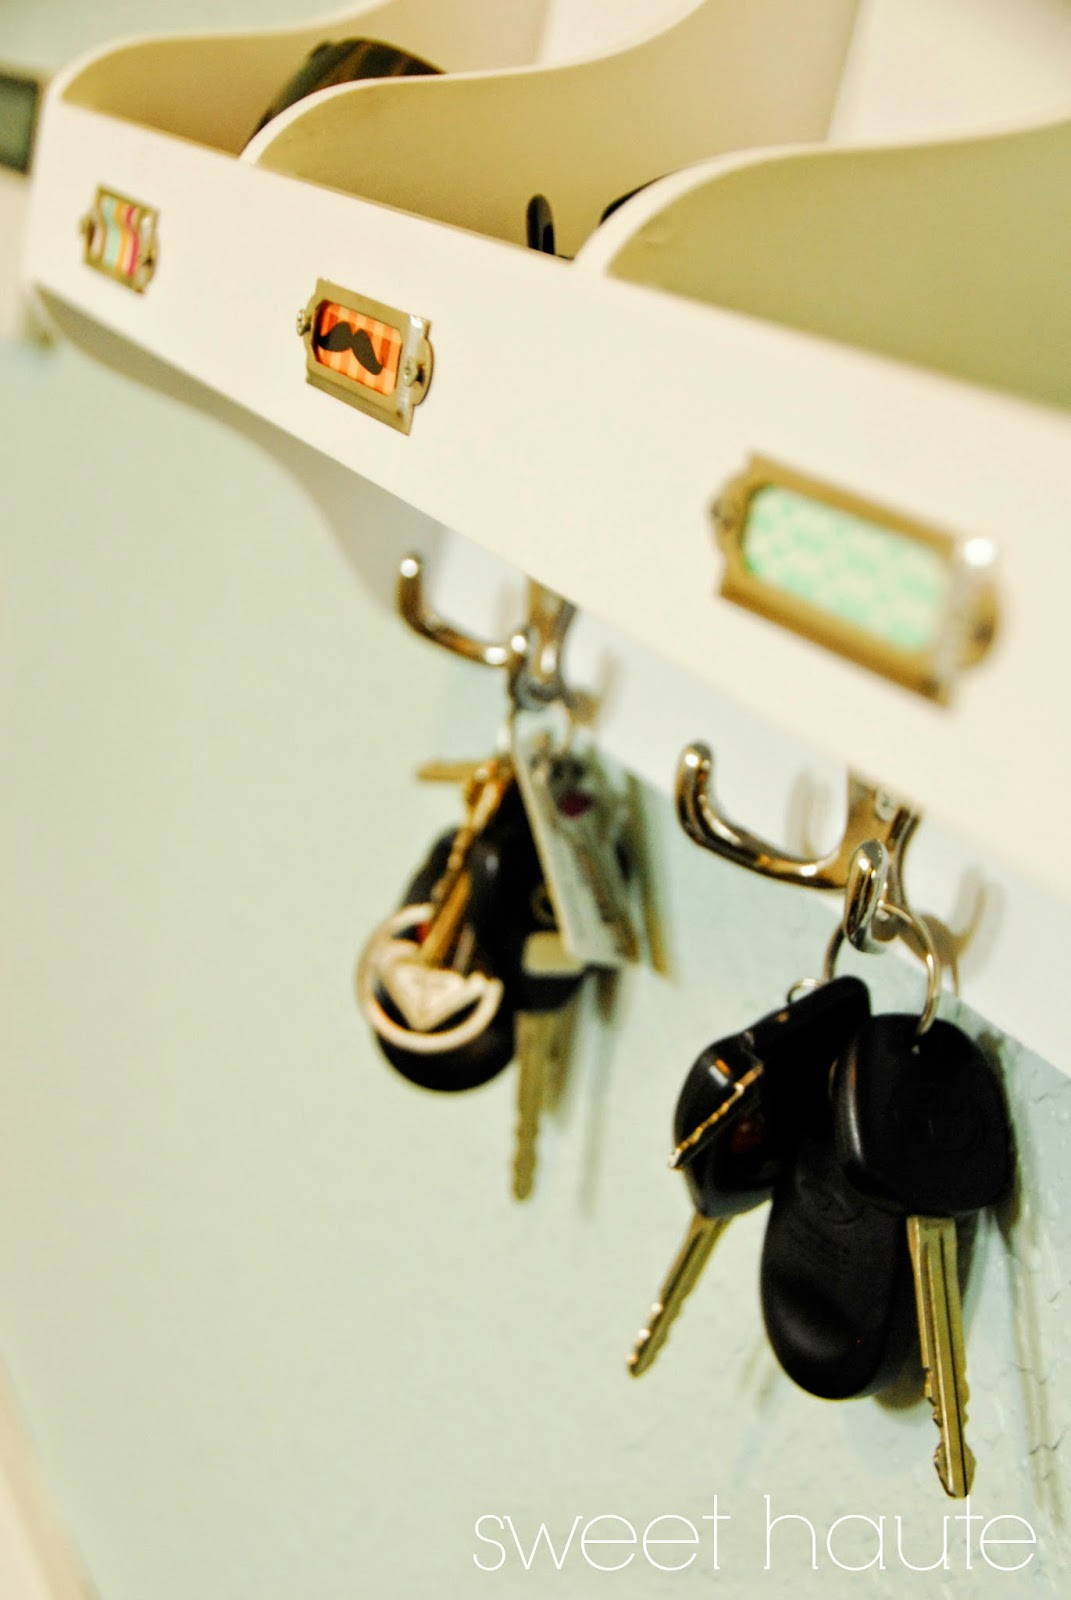 http://sweethaute.blogspot.com/2015/04/how-to-organize-mudroom.html